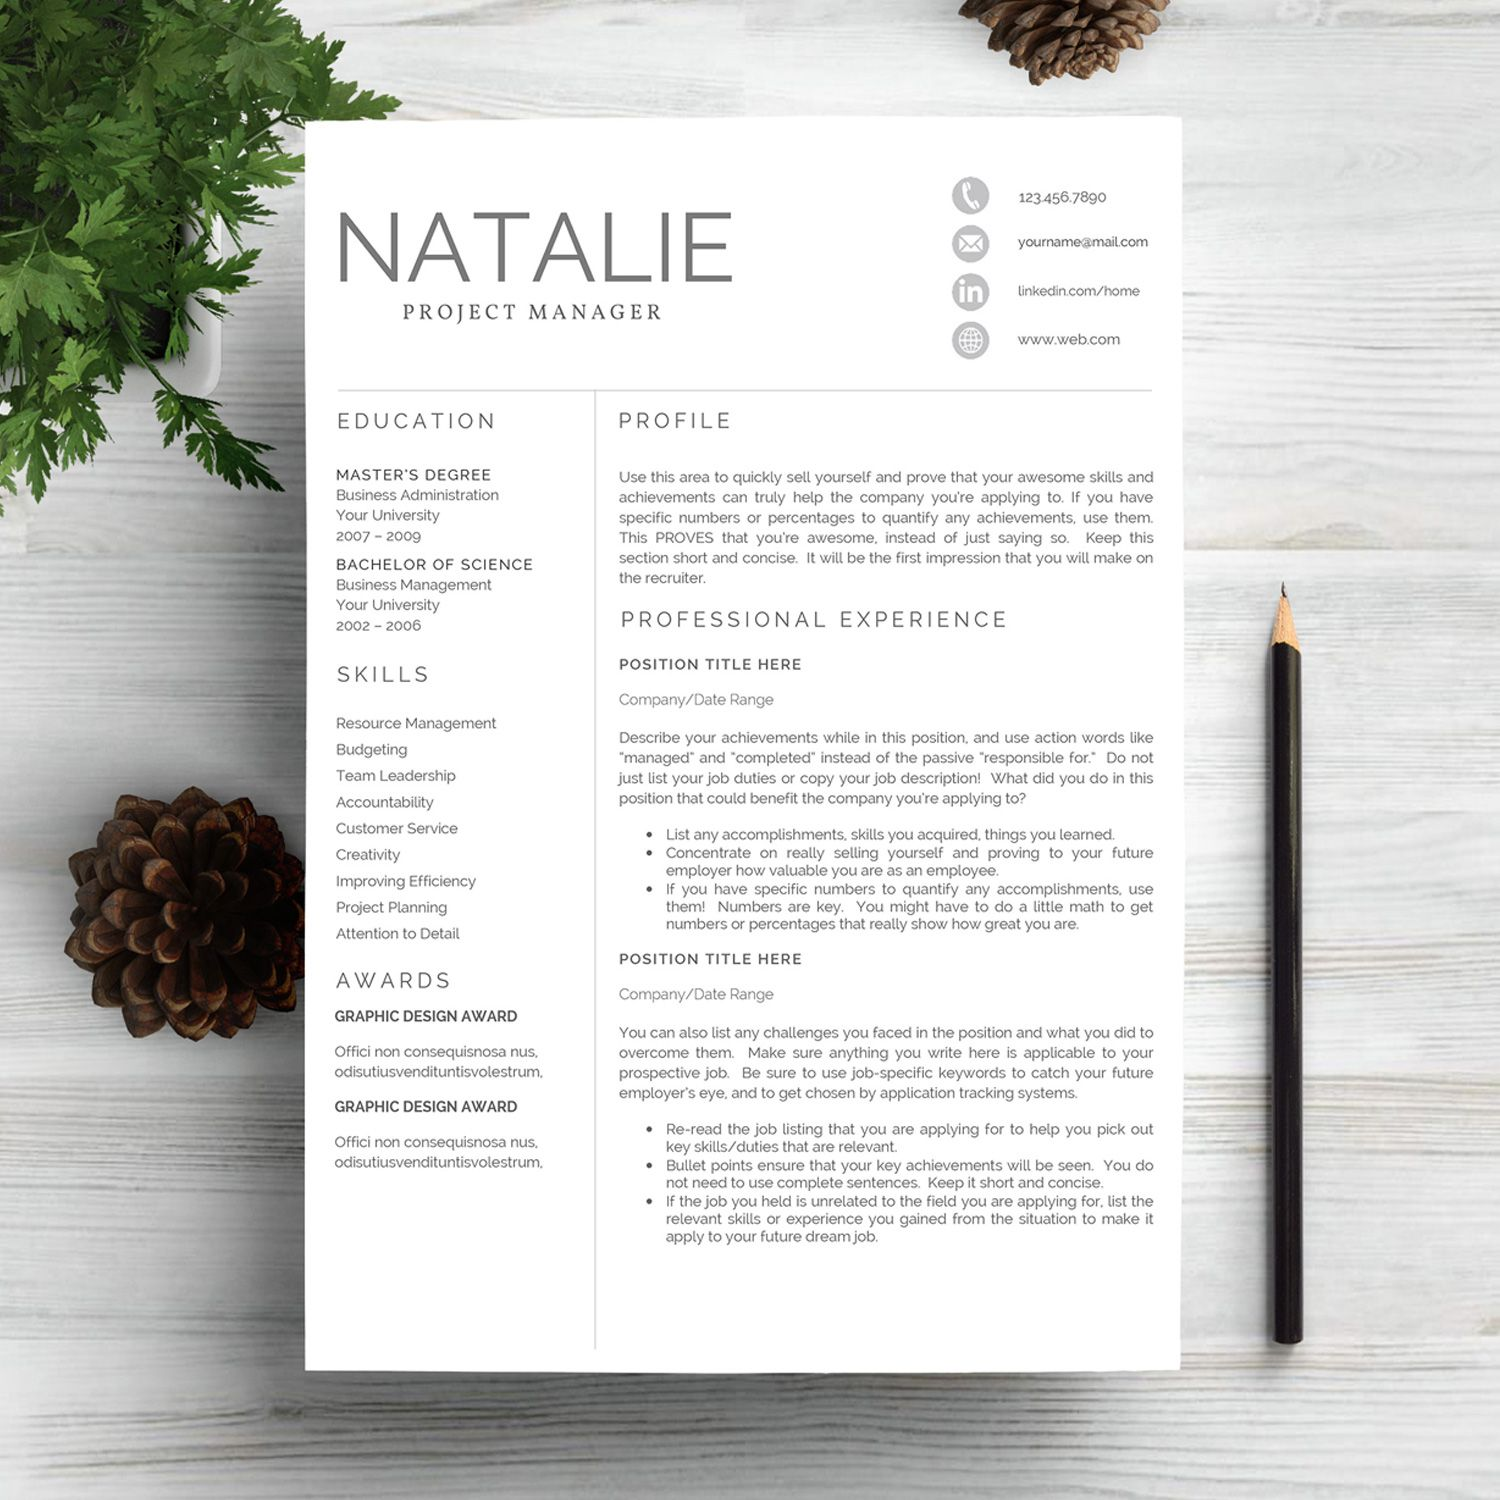 professional resume template for project manager